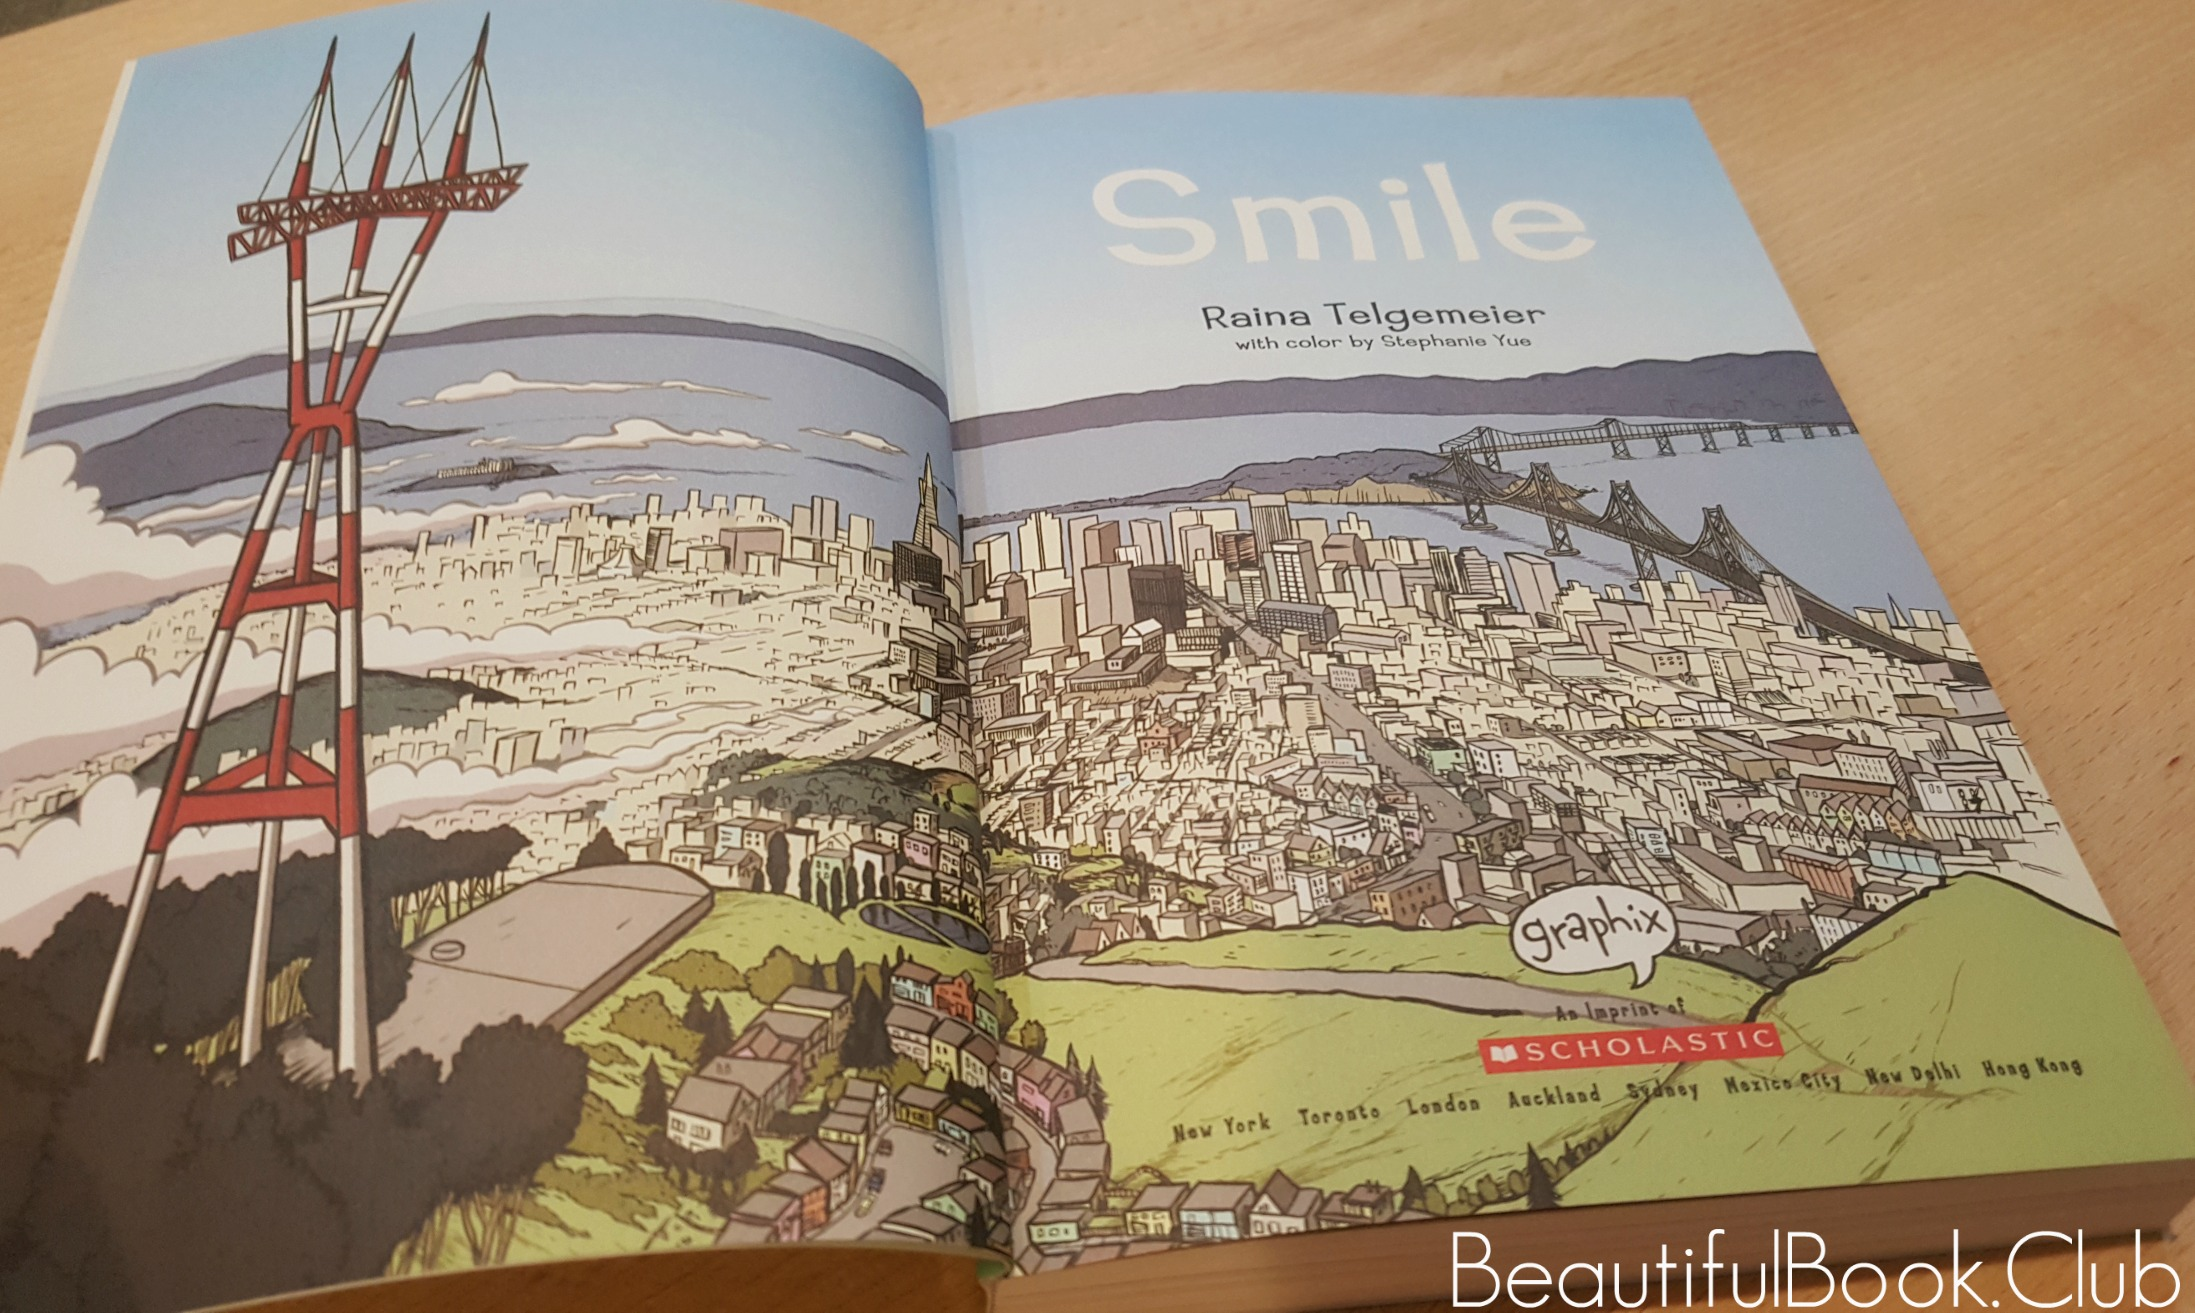 first page of Smile